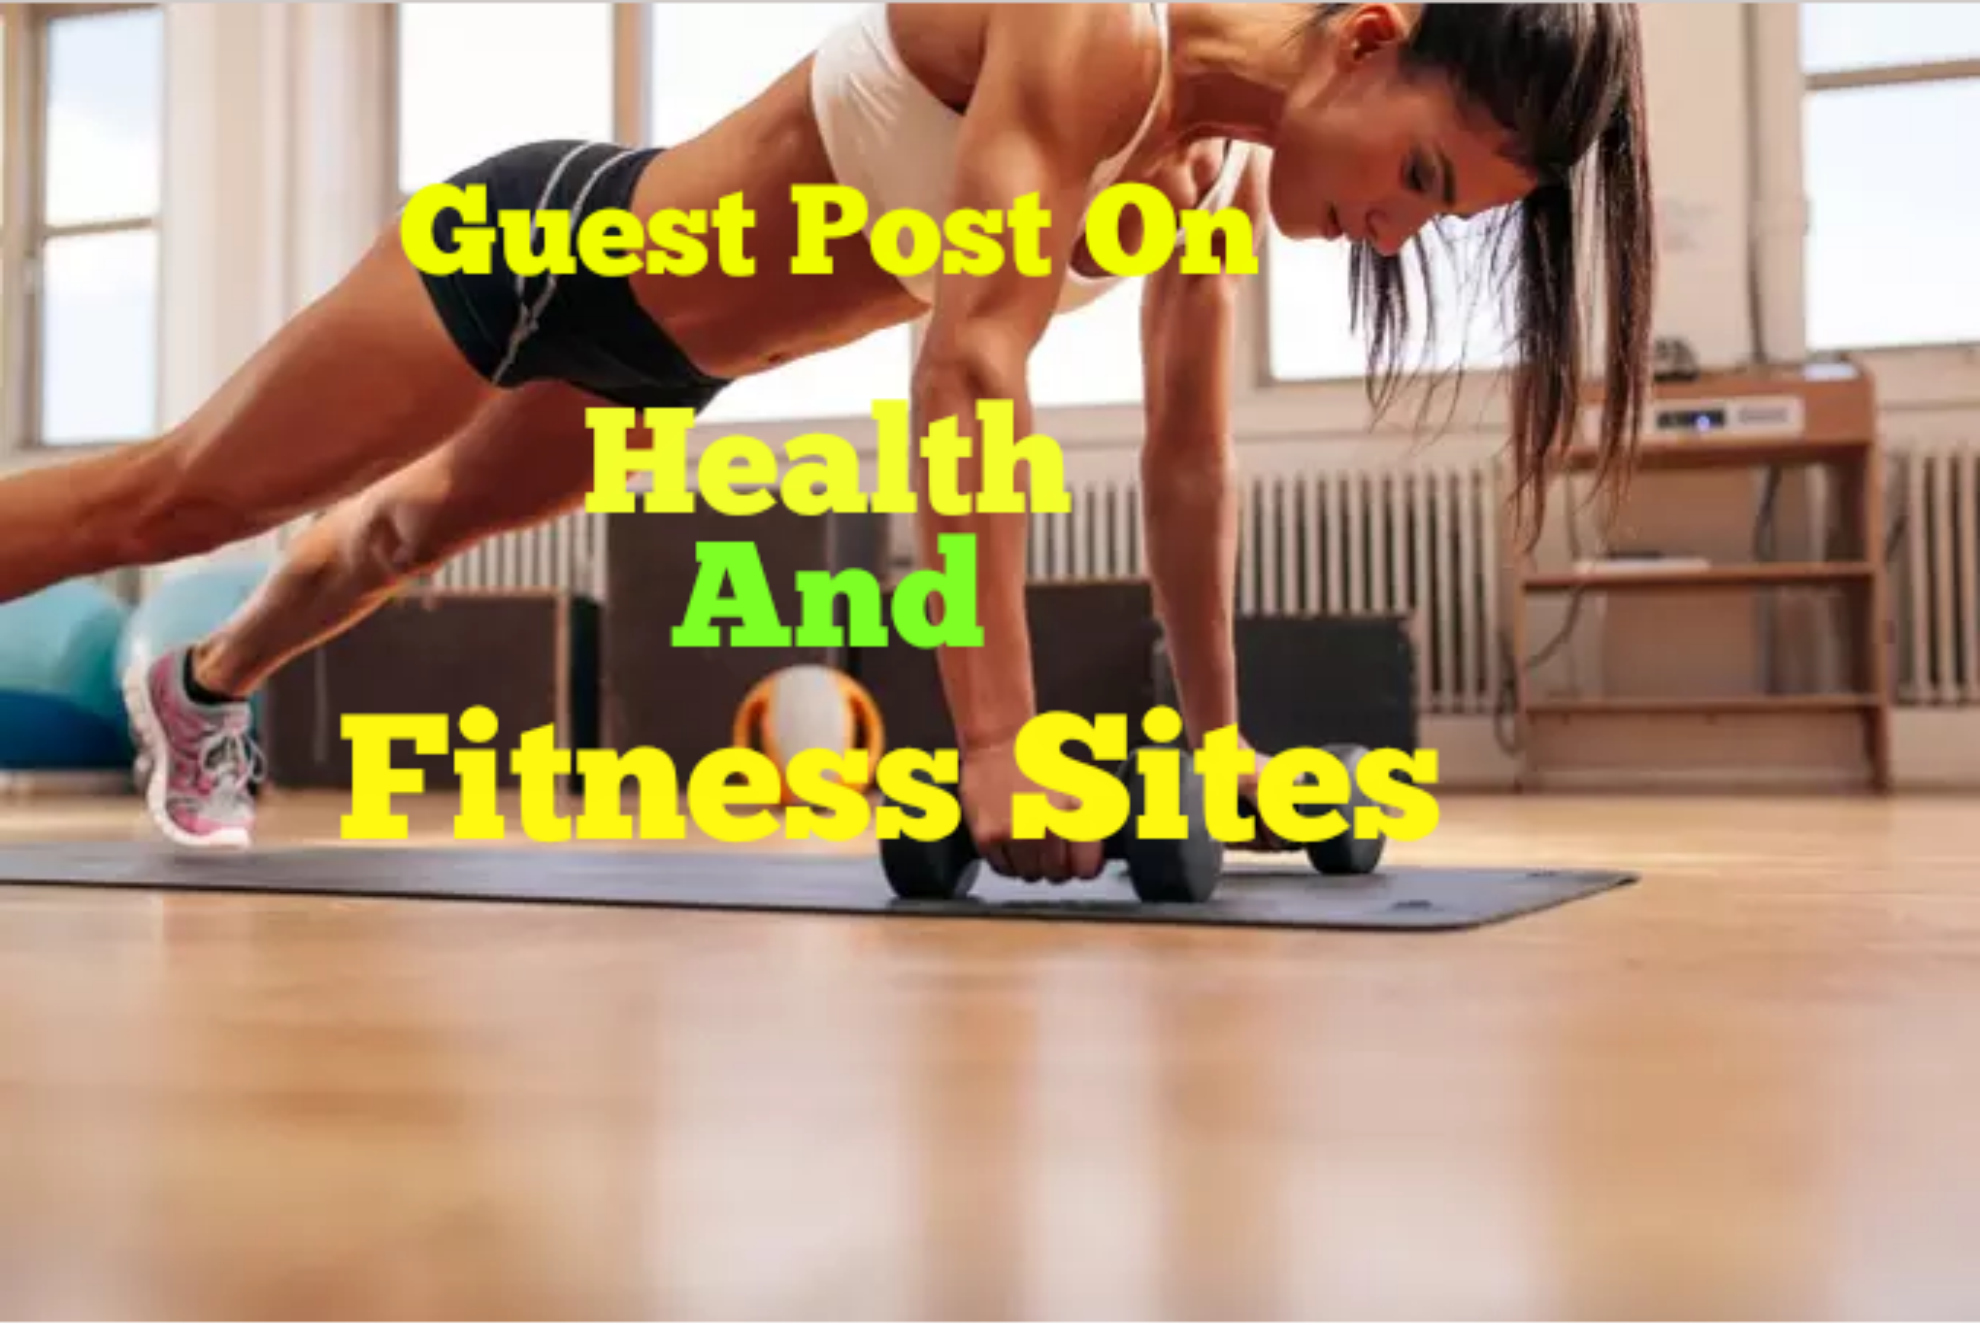 Publish Your Guest Post On Health And Fitness Site